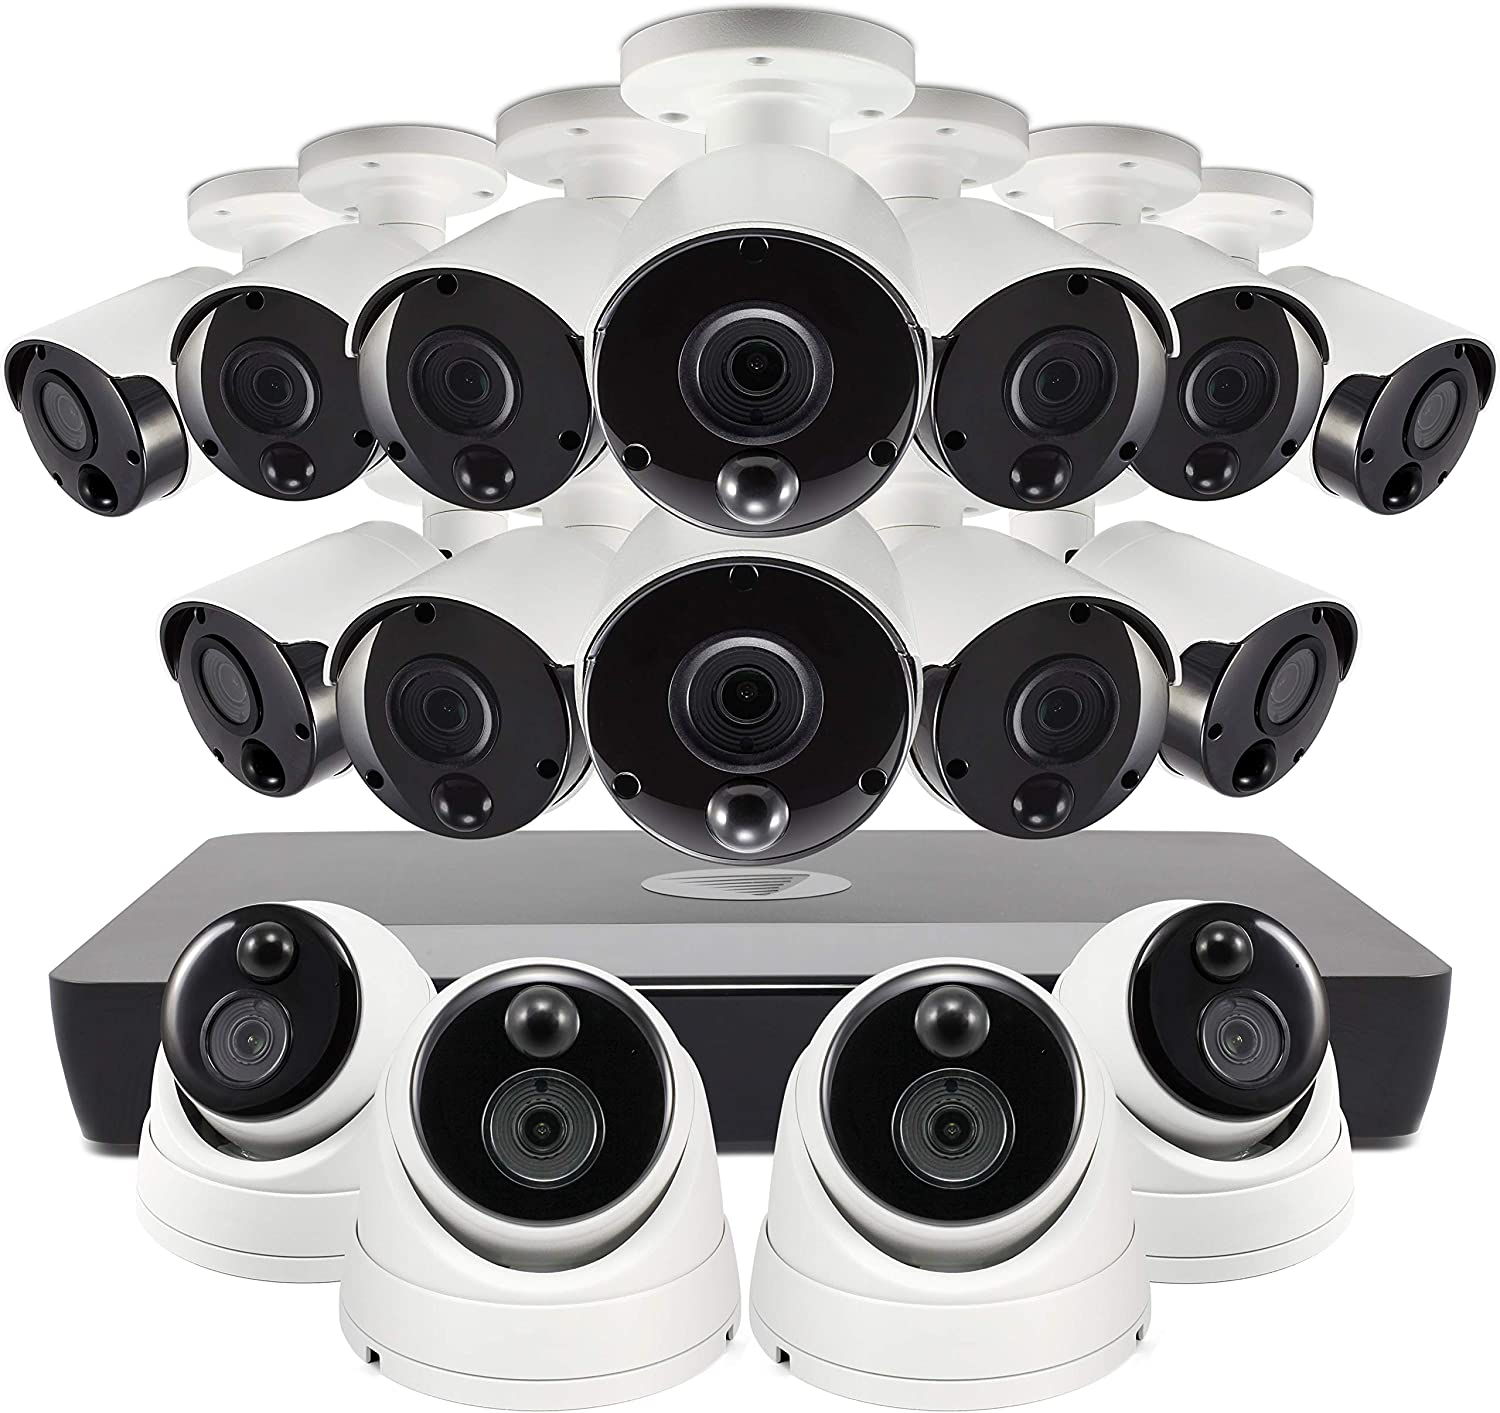 Swann Home PoE Security Camera System, 5mp HD 16 Channel 12 Bullet Cameras 4 Dome Cams, Indoor Outdoor Wired Surveillance NVR, 2TB Hard Drive, Night Vision, Heat Motion Detection, SONVK-1675812B4D